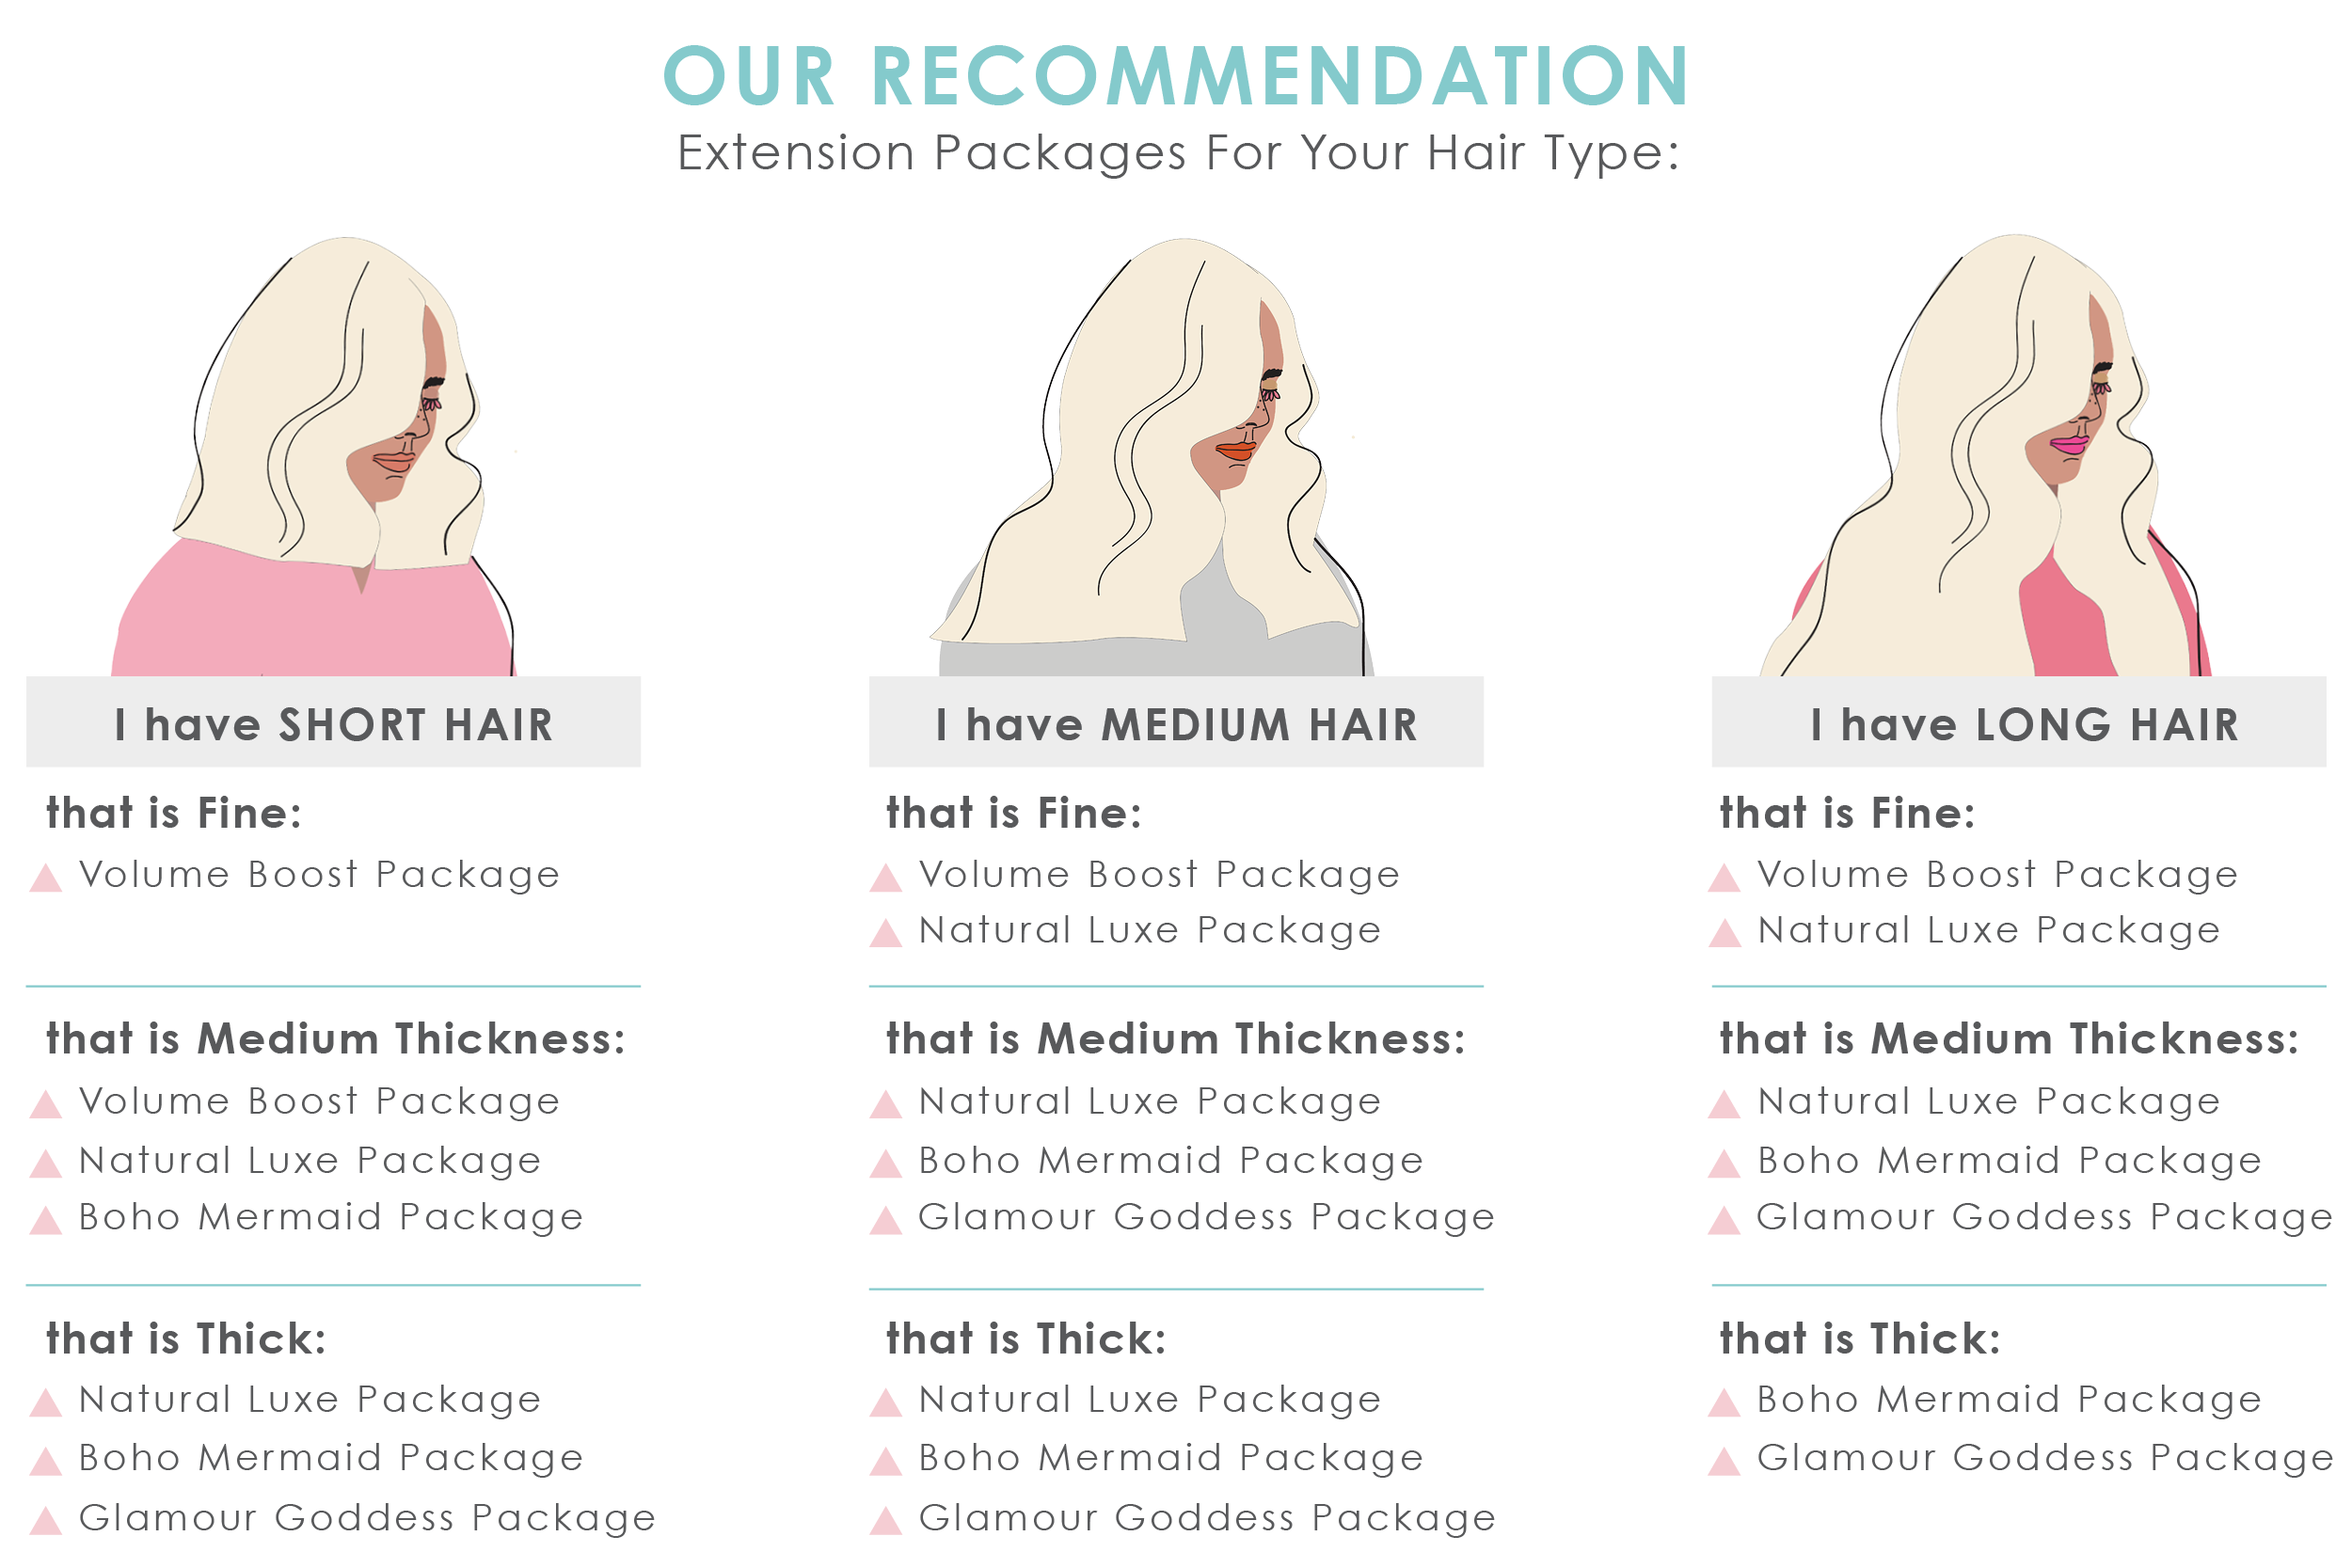 ONE HAIR SALON HAIR EXTENSION PACKAGES RECOMMENDATION, PERTH'S LUXURY HAIR EXTENSIONS SPECIALIST